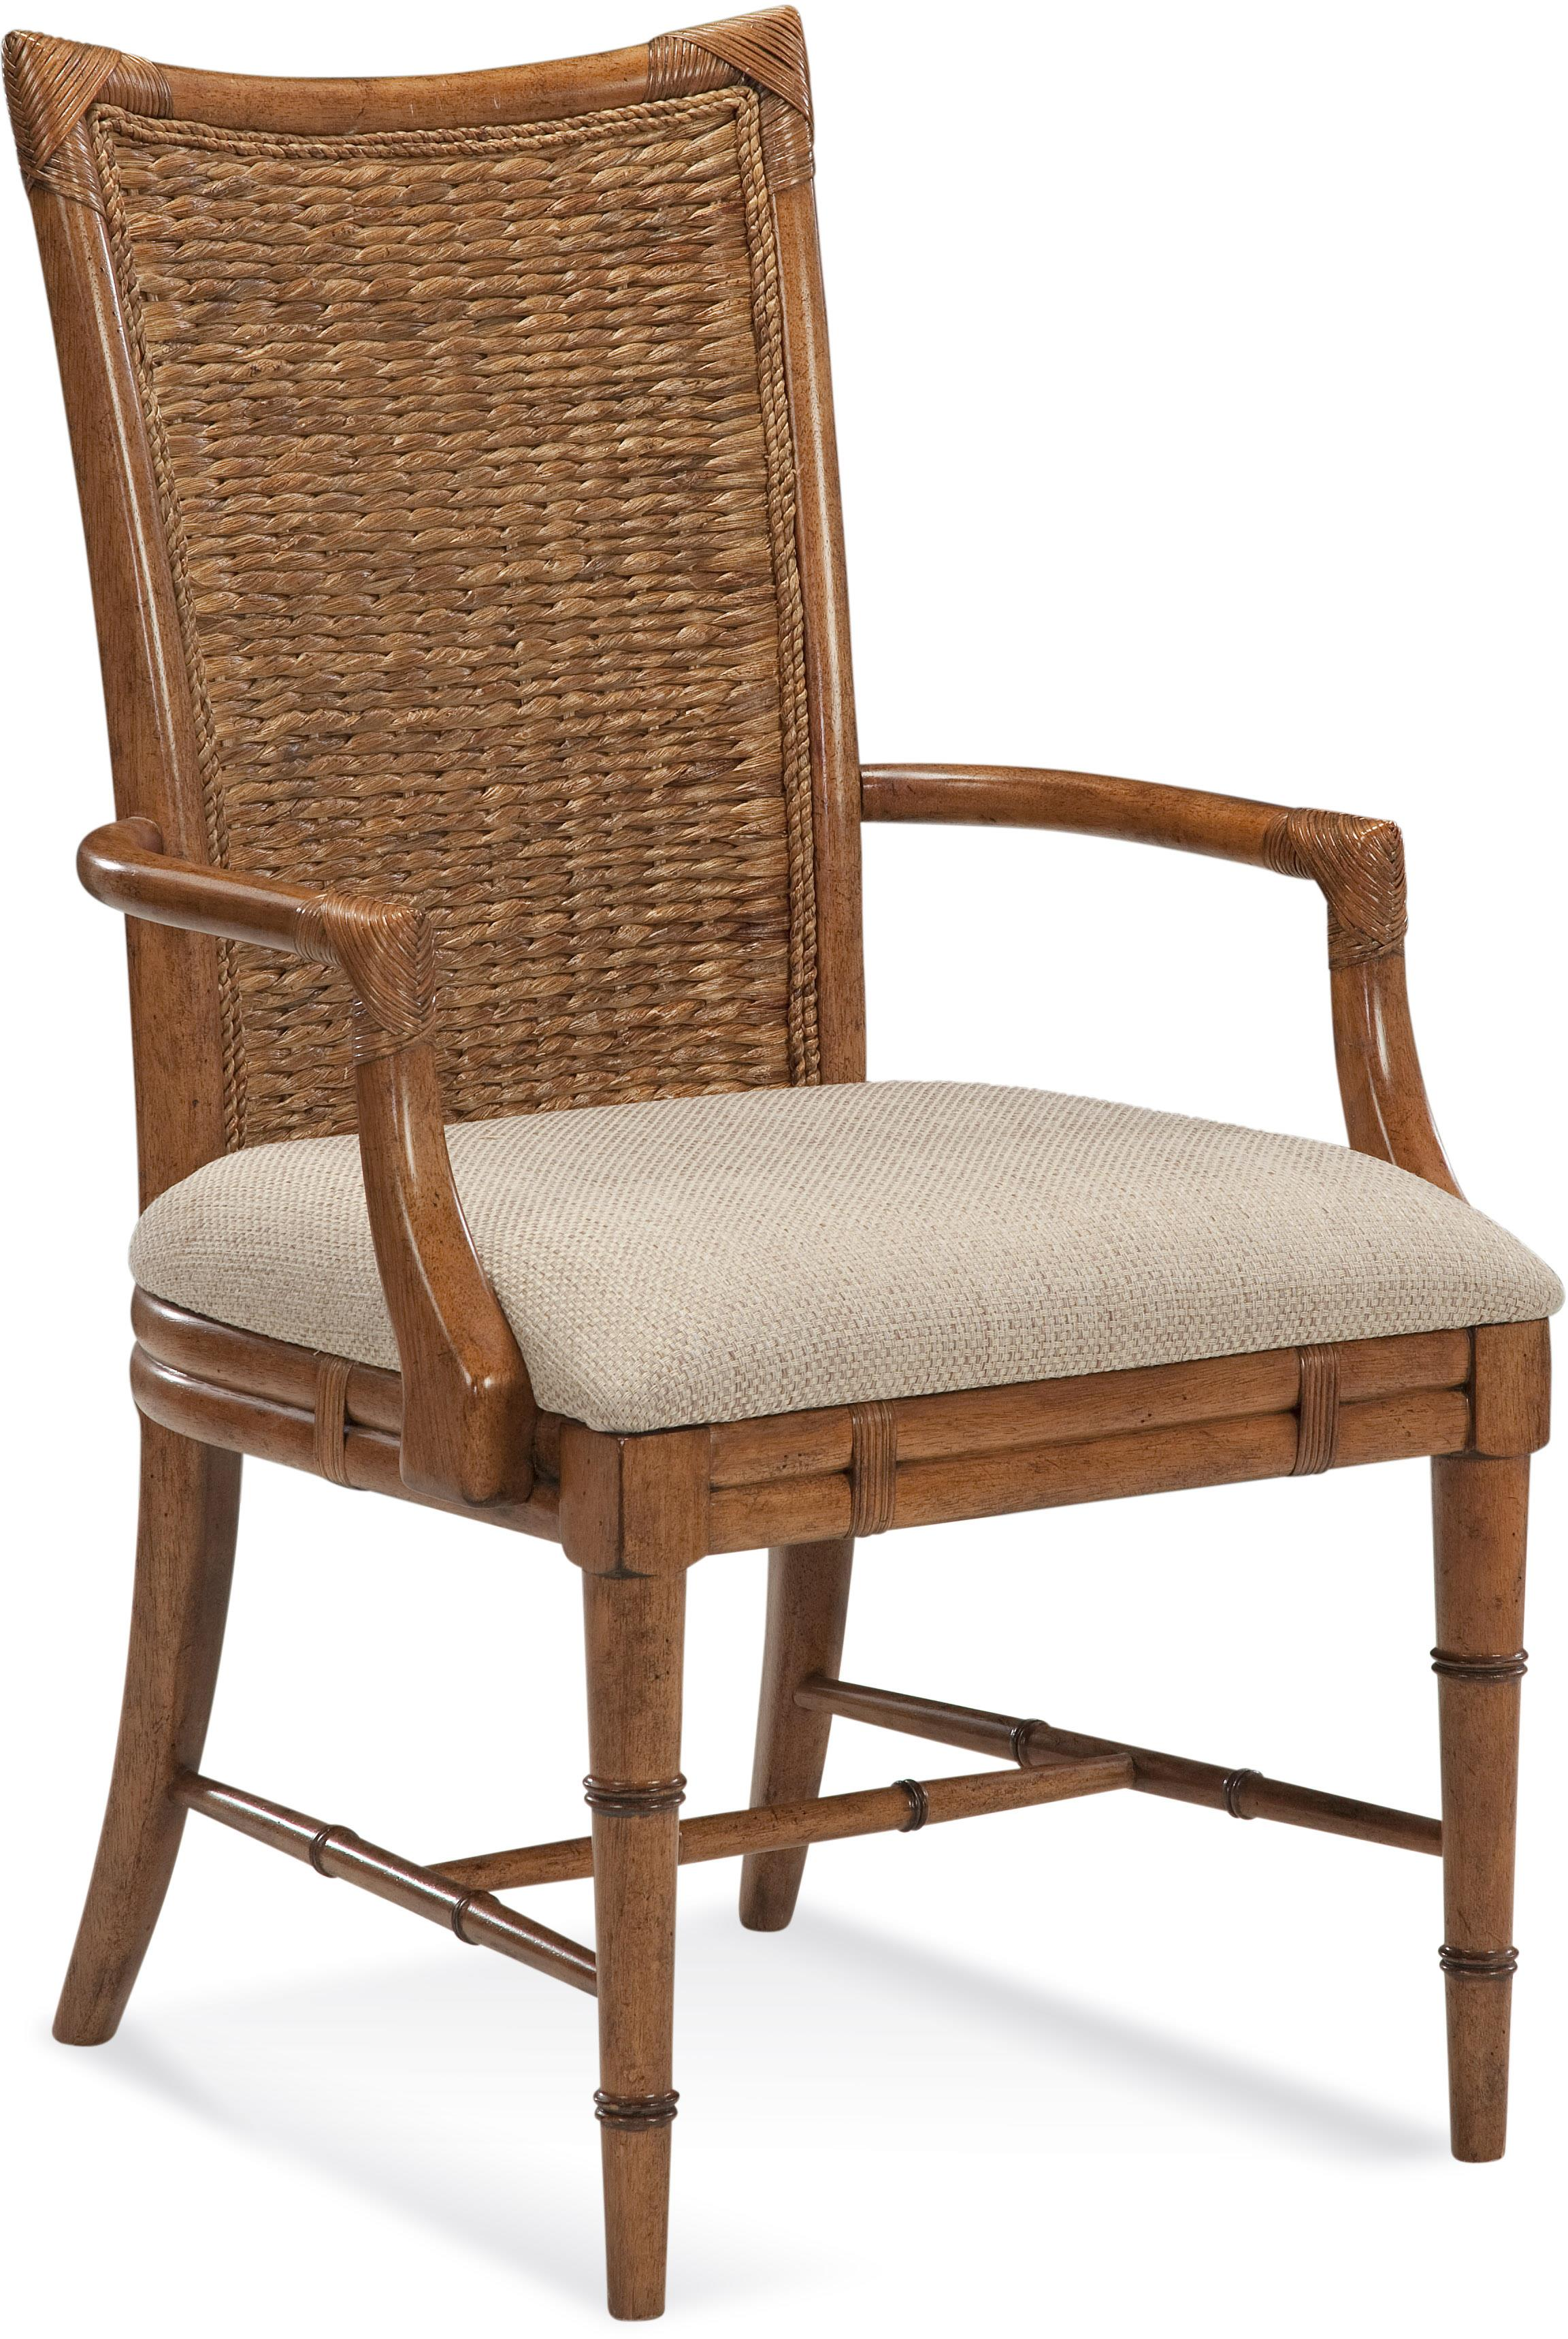 Lacquer Craft USA Paradise Bay Arm Chair - Item Number: 9005-301KD PARADISE CHAIR